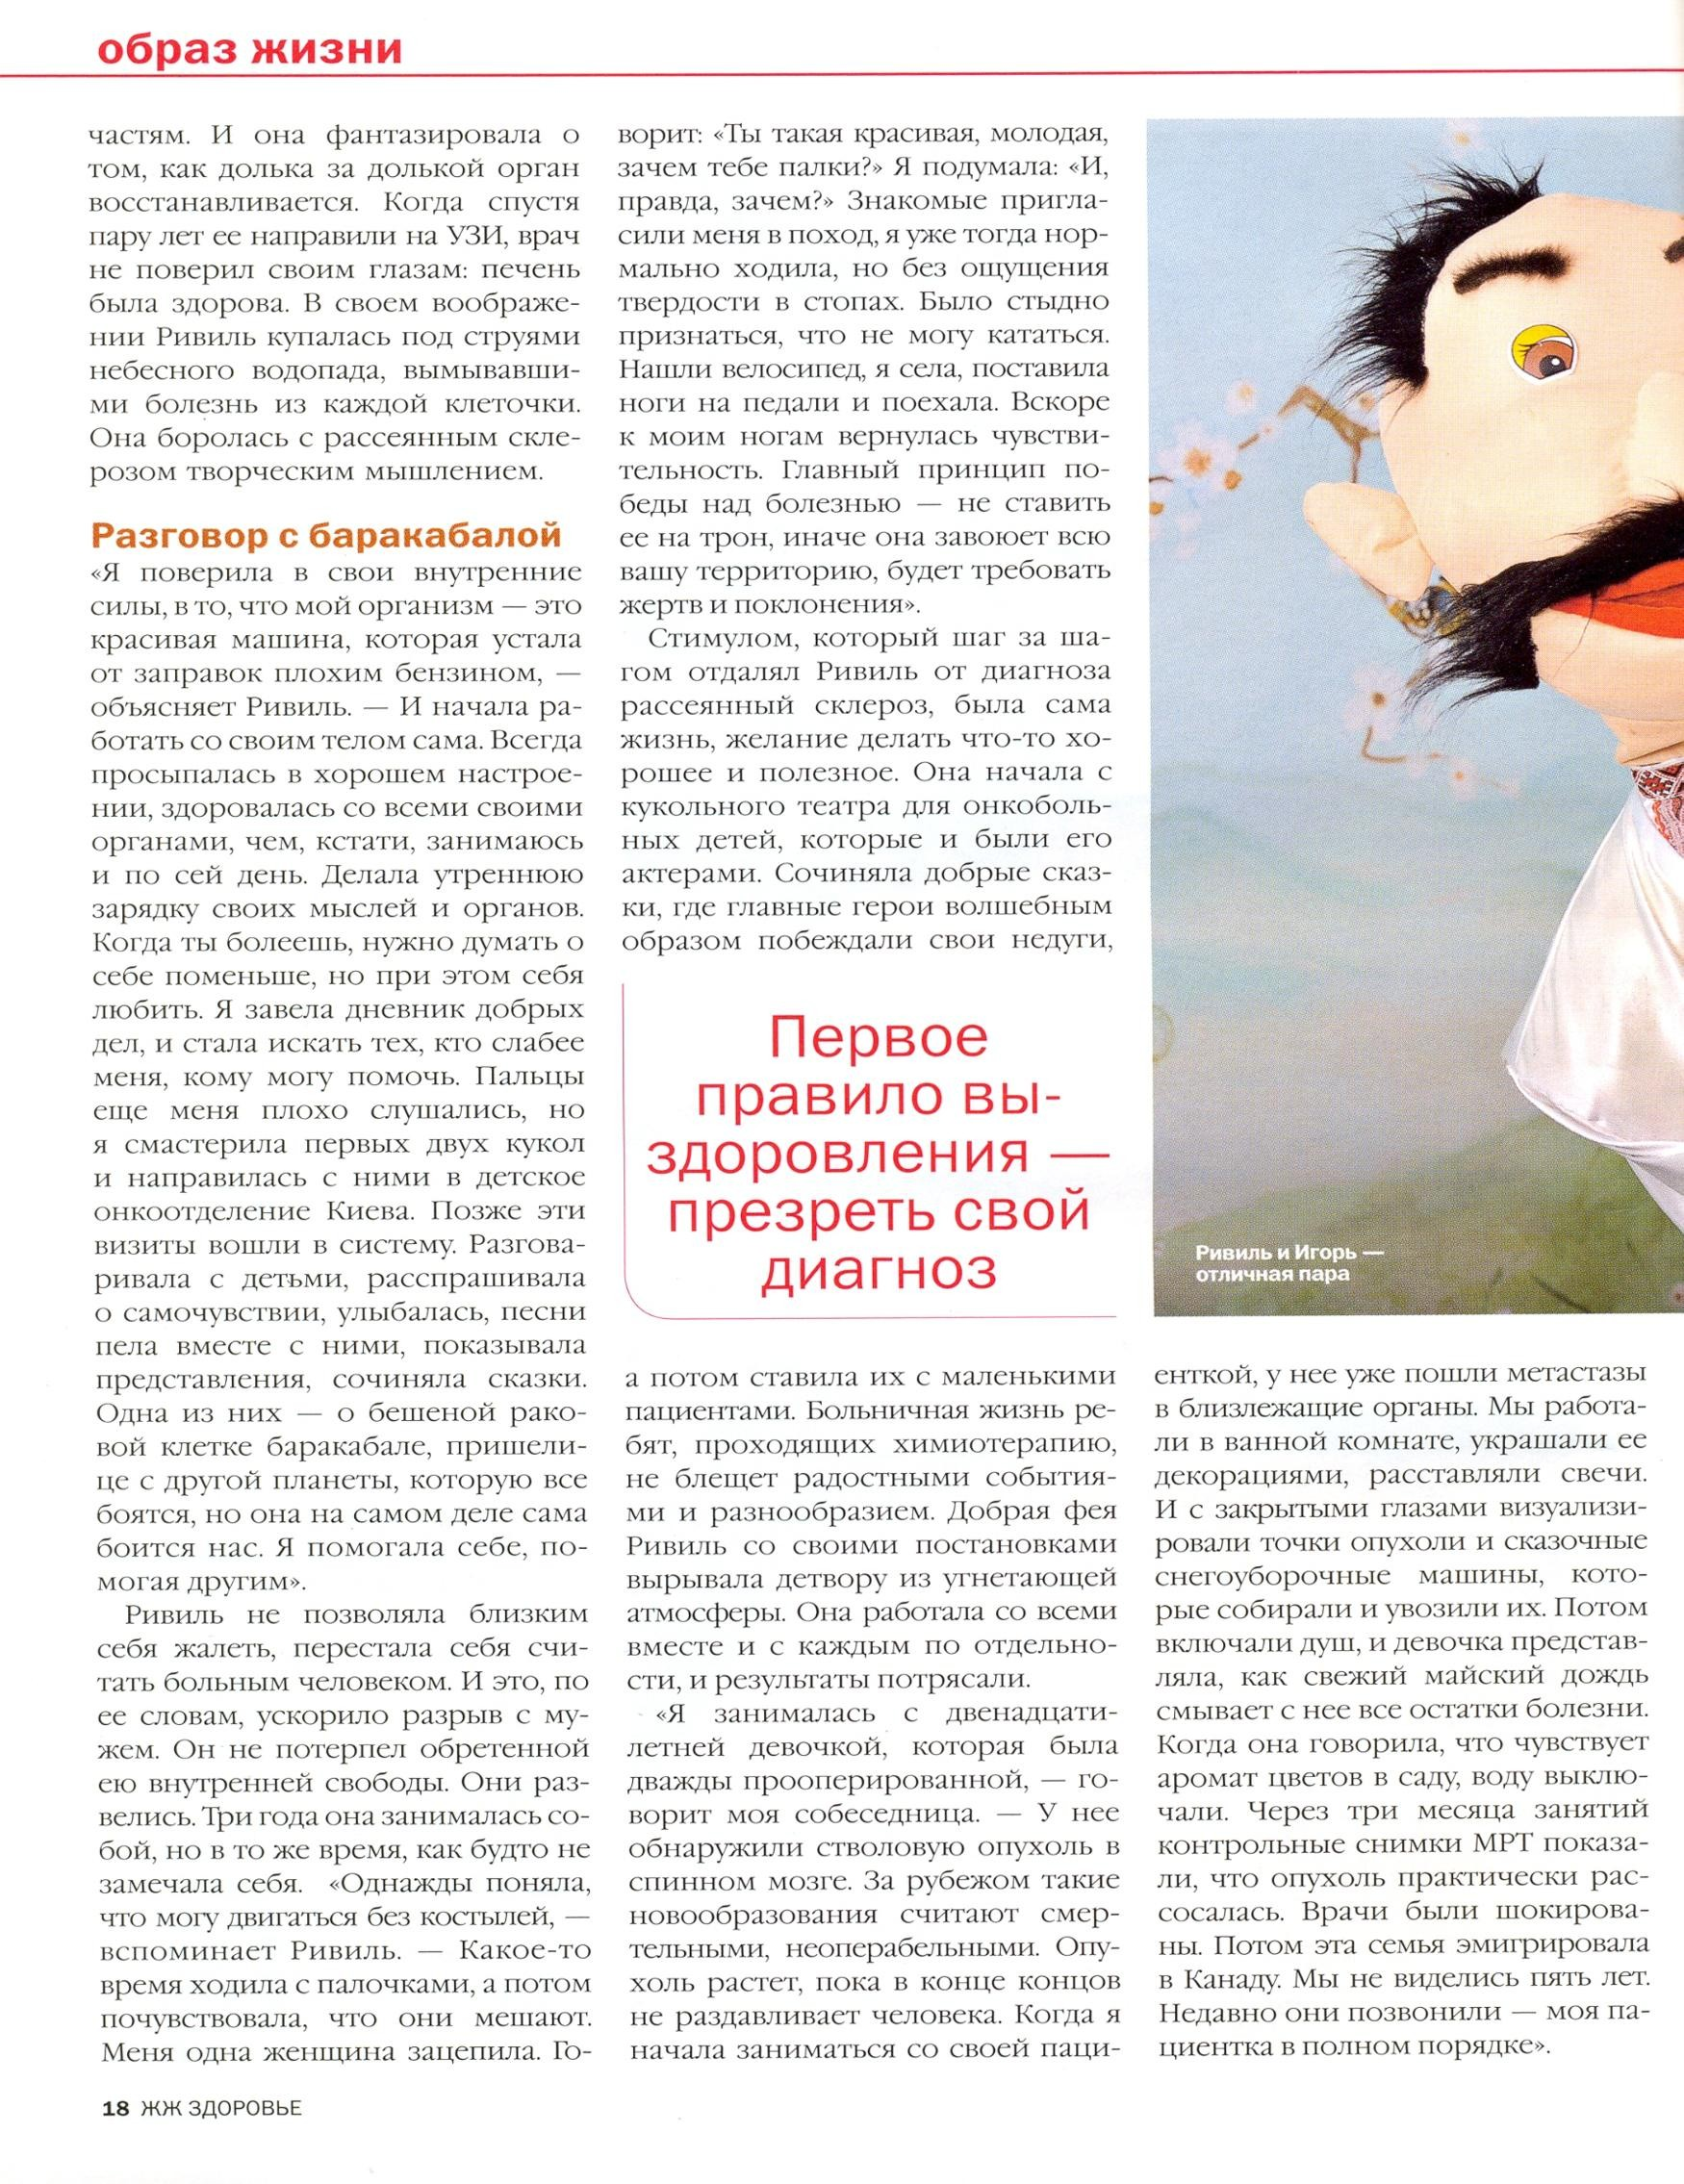 Page 12 from \'Zdorovie052010\'_page1_image1